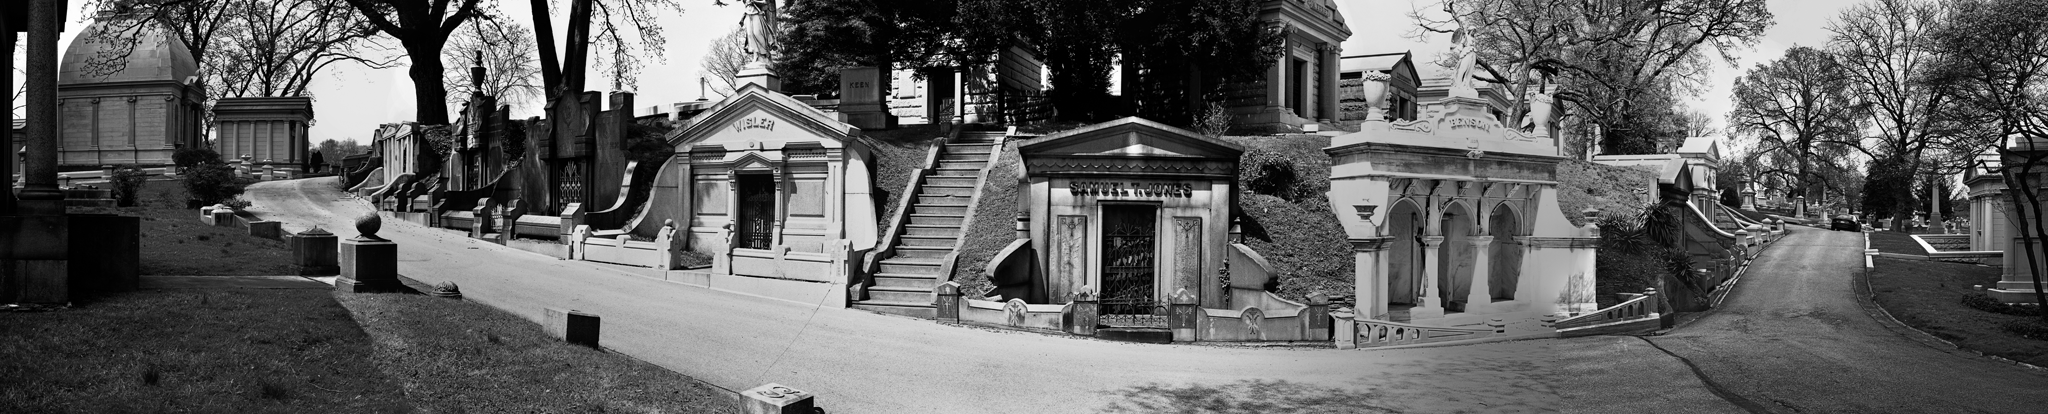 4x5_for_365_project_0120_Laurel_Hill_Cemetery_Crypt_Row_pano.png